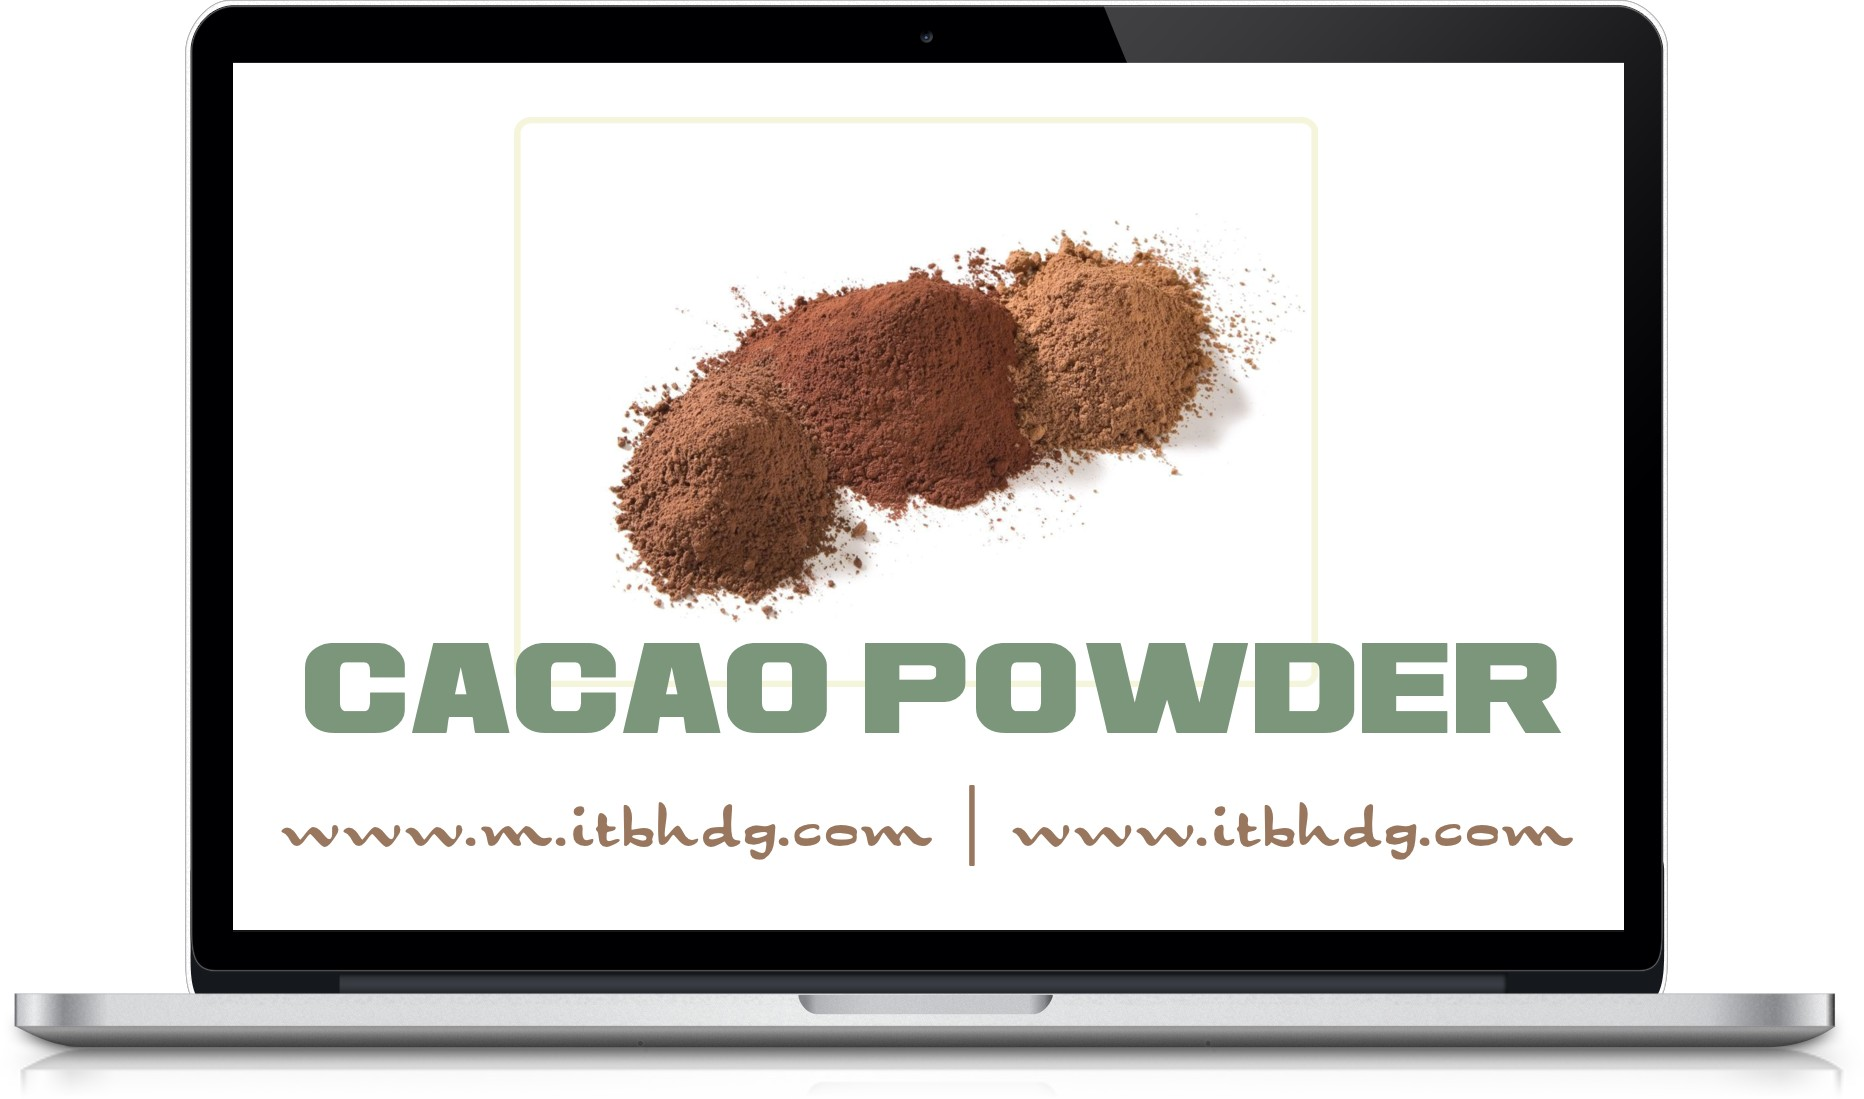 Save Time and Money, Shop Here for Cacao, Cocoa Products